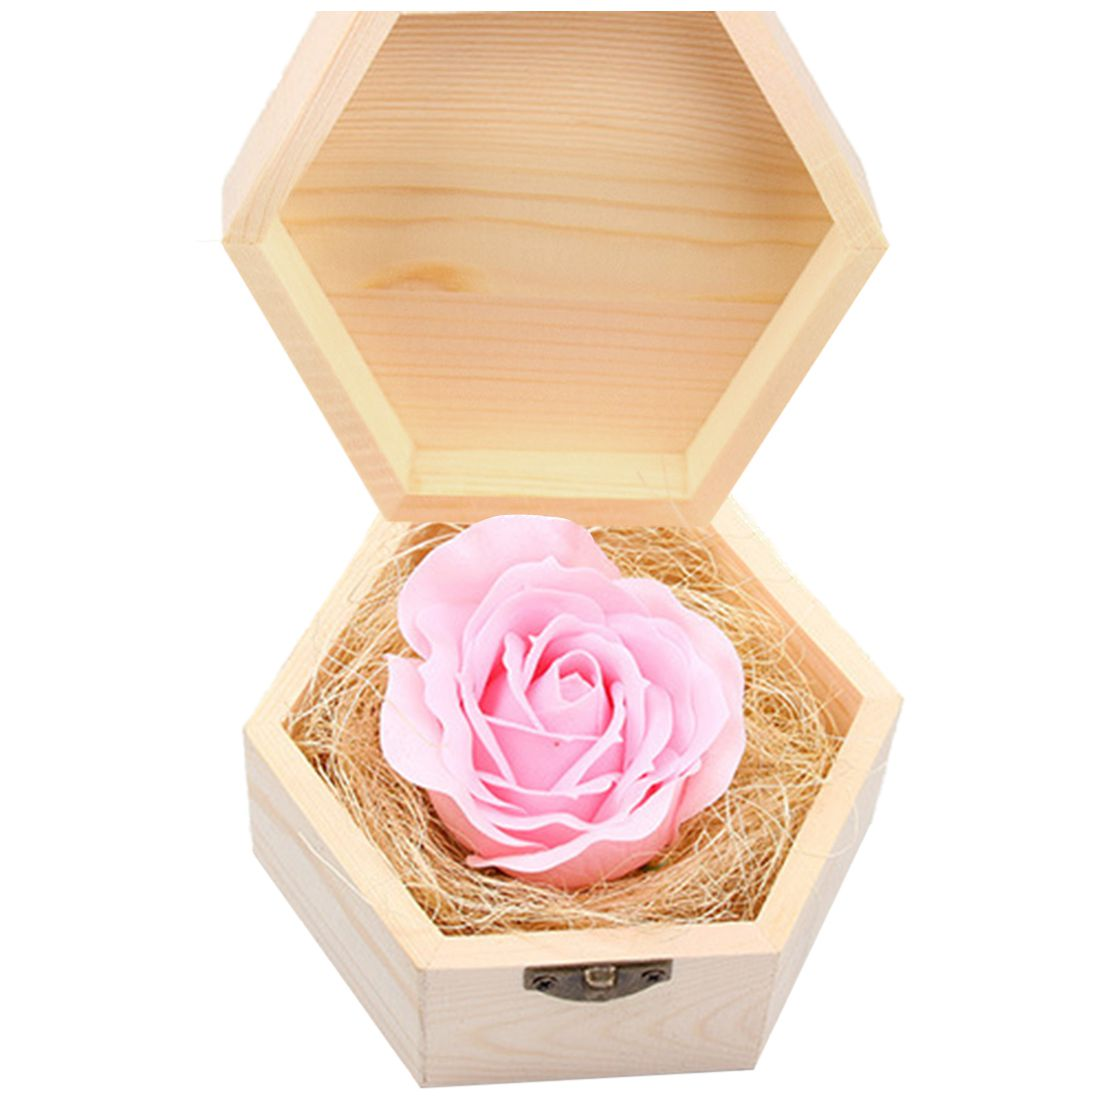 New Boutique Soap Flowers Gift Box For Birthday Gifts Teachers